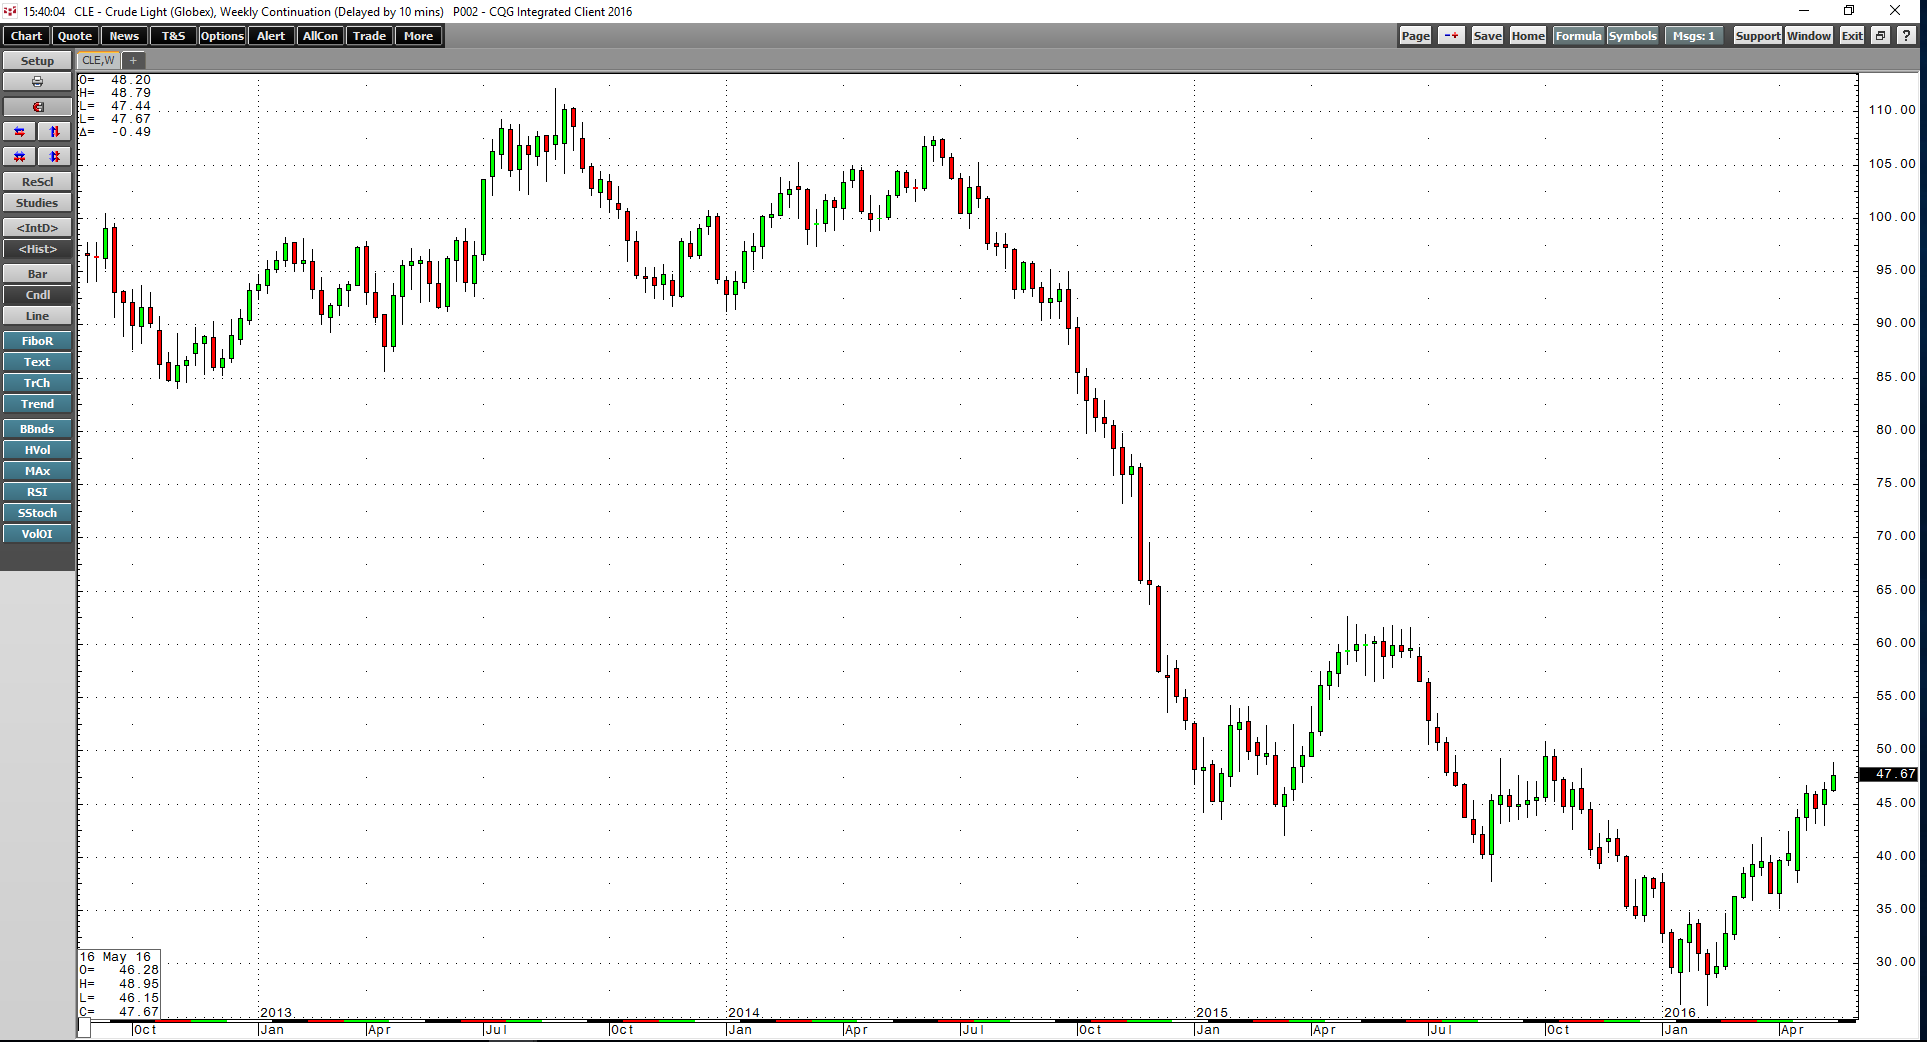 Other commodities market levels archives enterprise uk as the weekly chart illustrates the price of the energy commodity has rallied from lows of 2605 per barrel on february 11 to highs of 4895 last week publicscrutiny Gallery